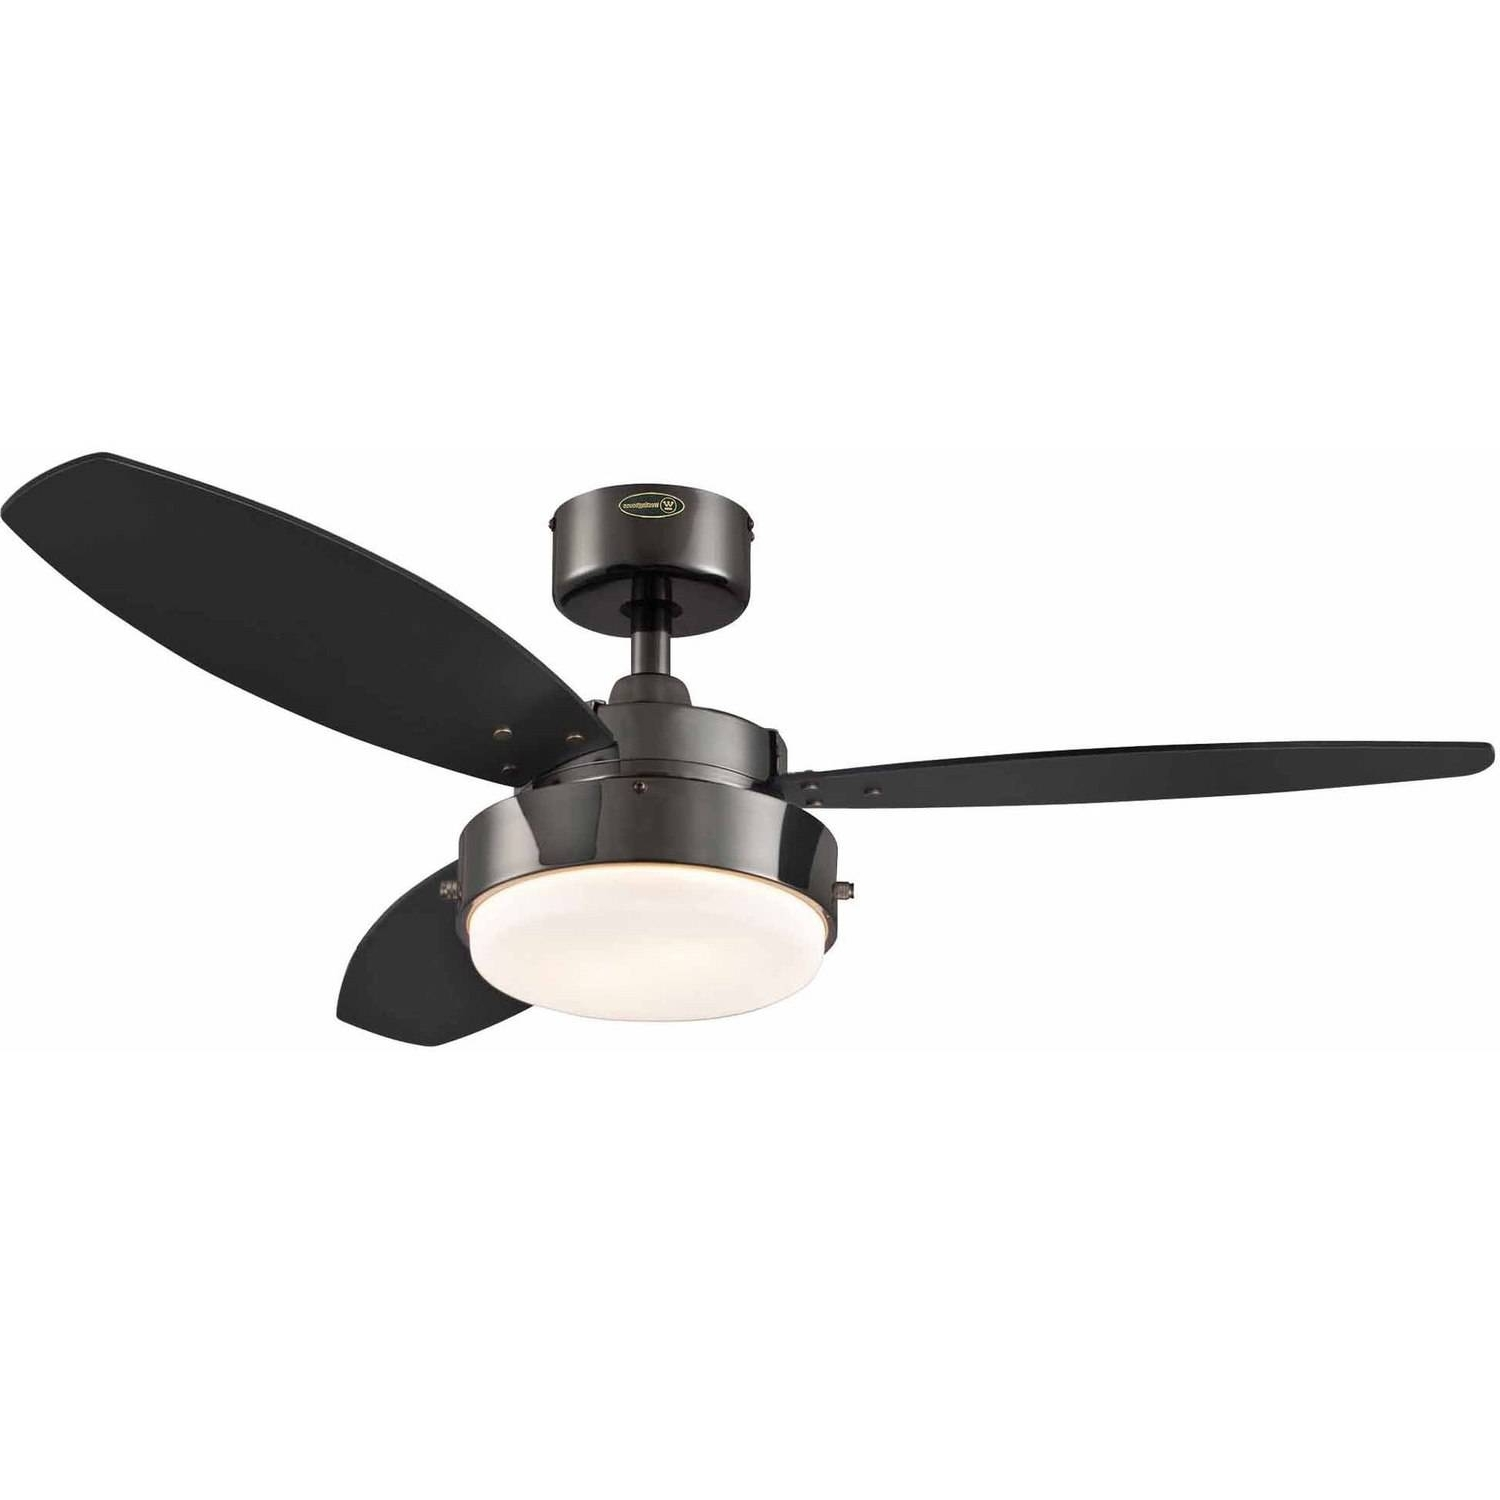 "Recent Metal Outdoor Ceiling Fans With Light Regarding Westinghouse 7876400 42"" Gun Metal 3 Blade Reversible Ceiling Fan (Gallery 5 of 20)"